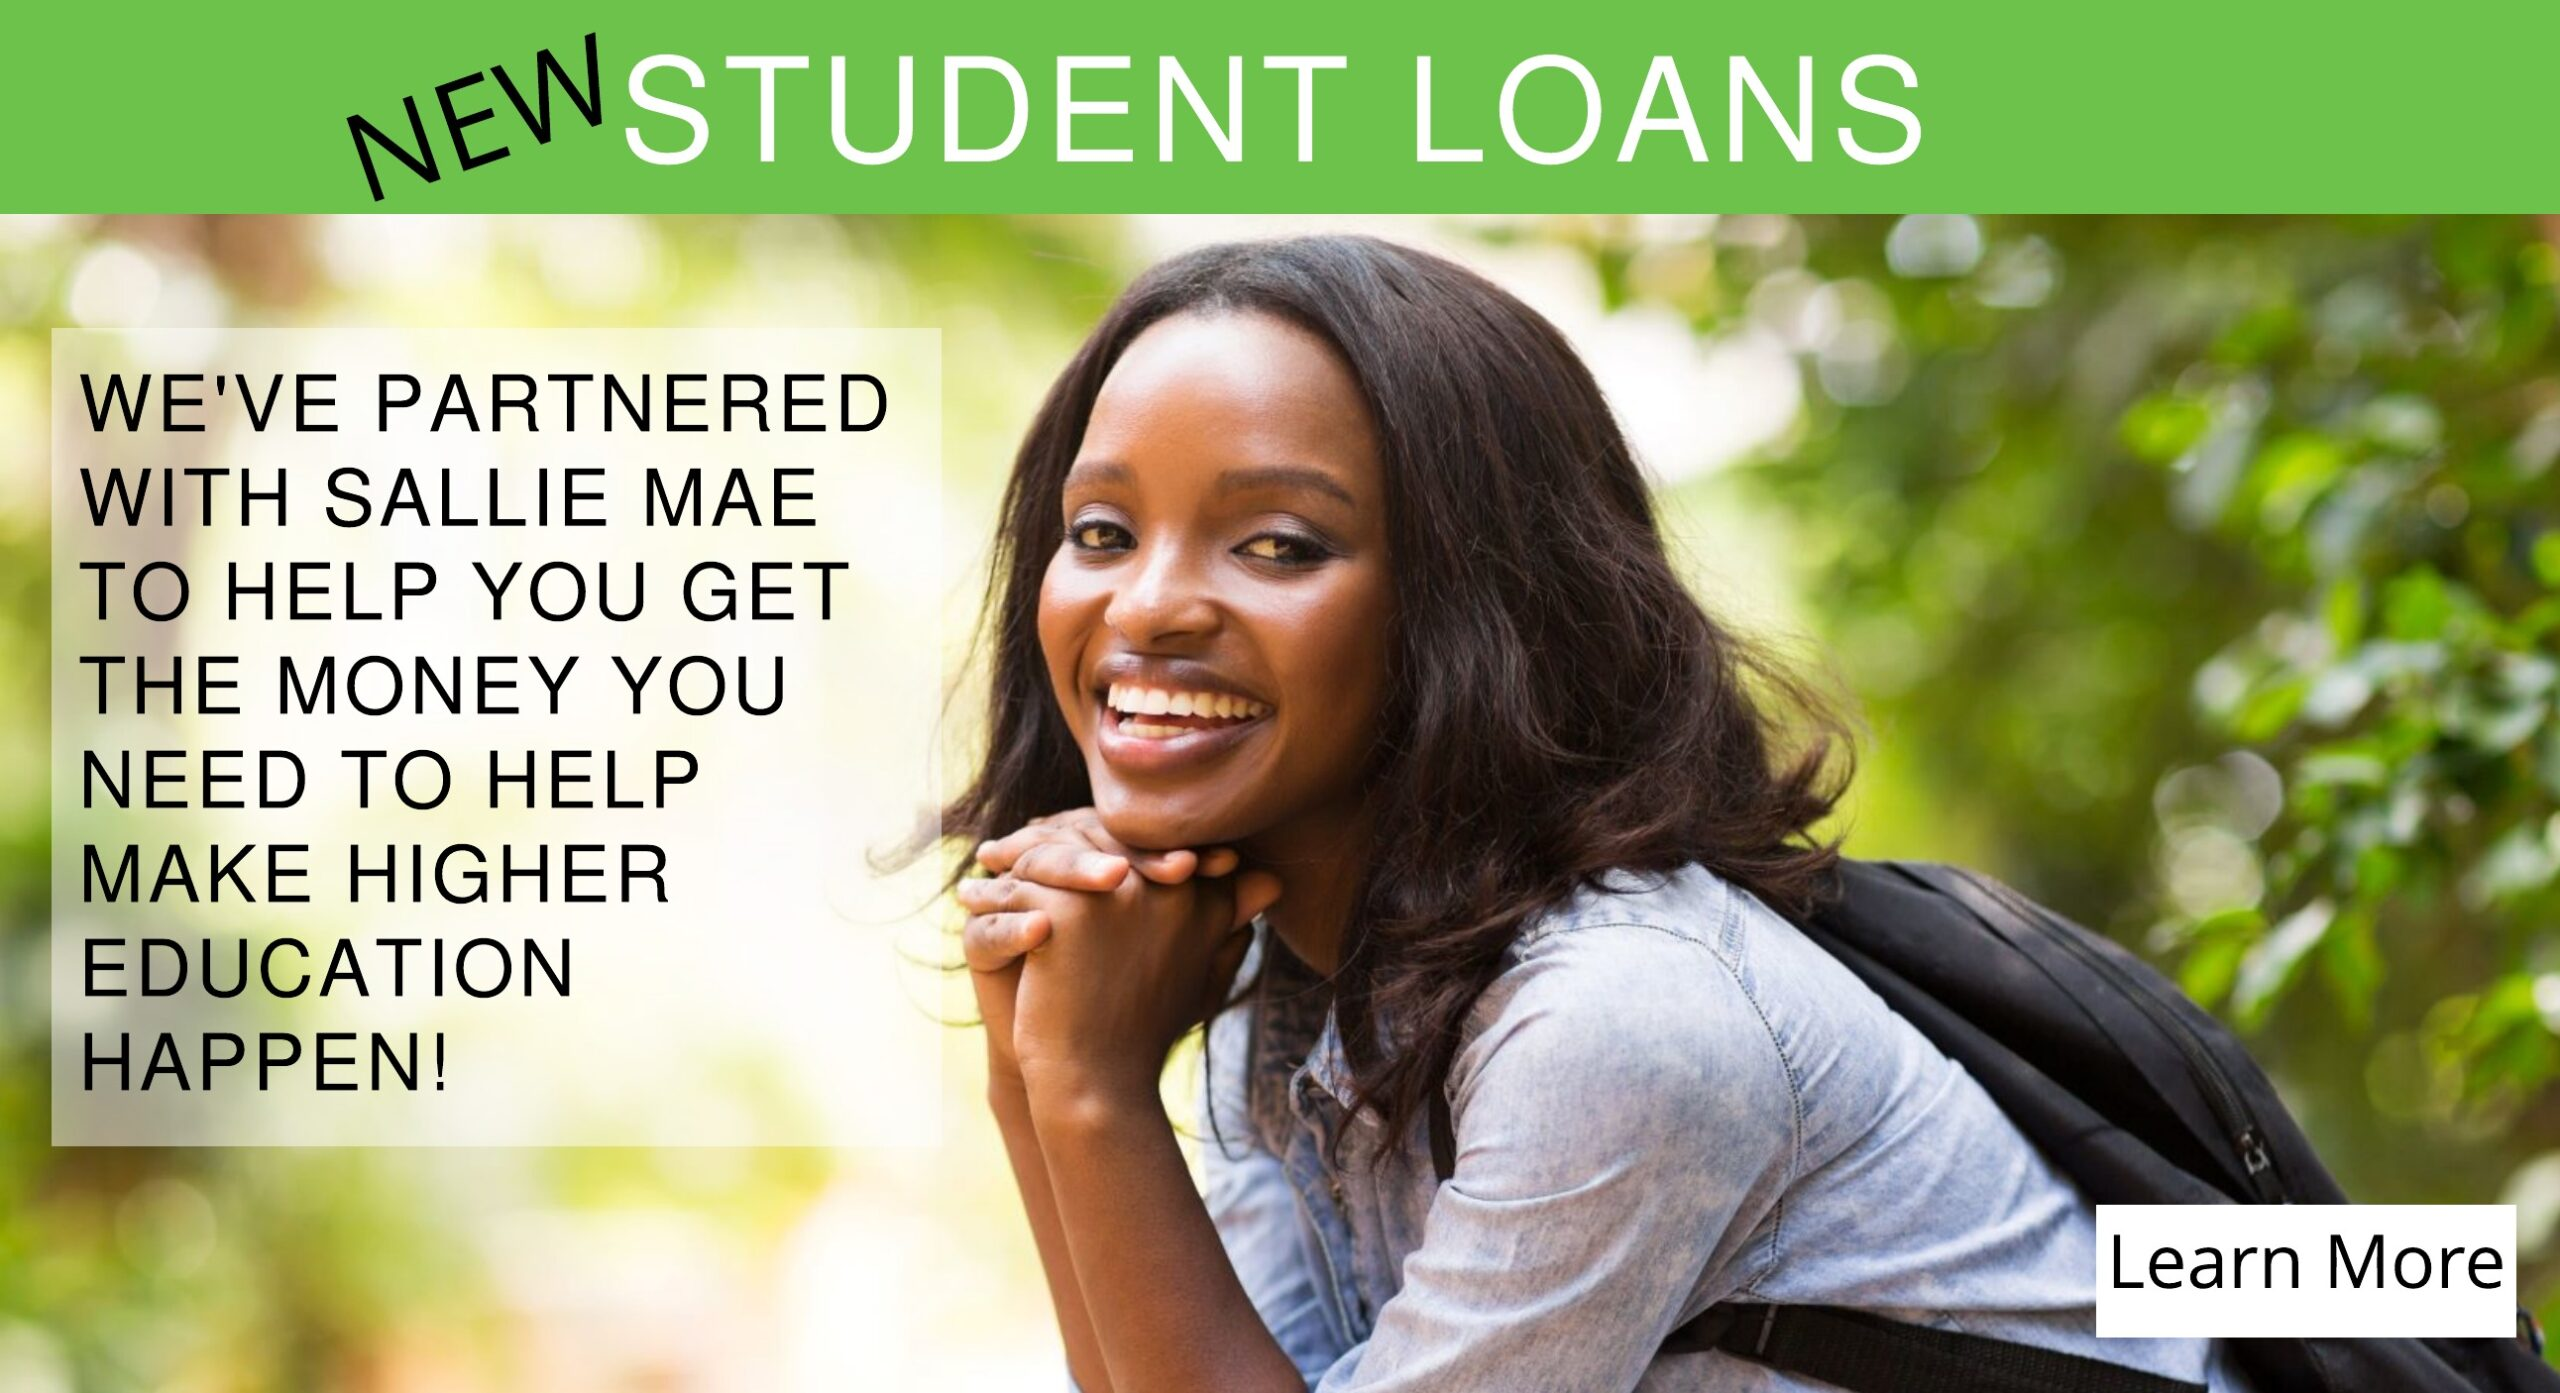 New Student Loans